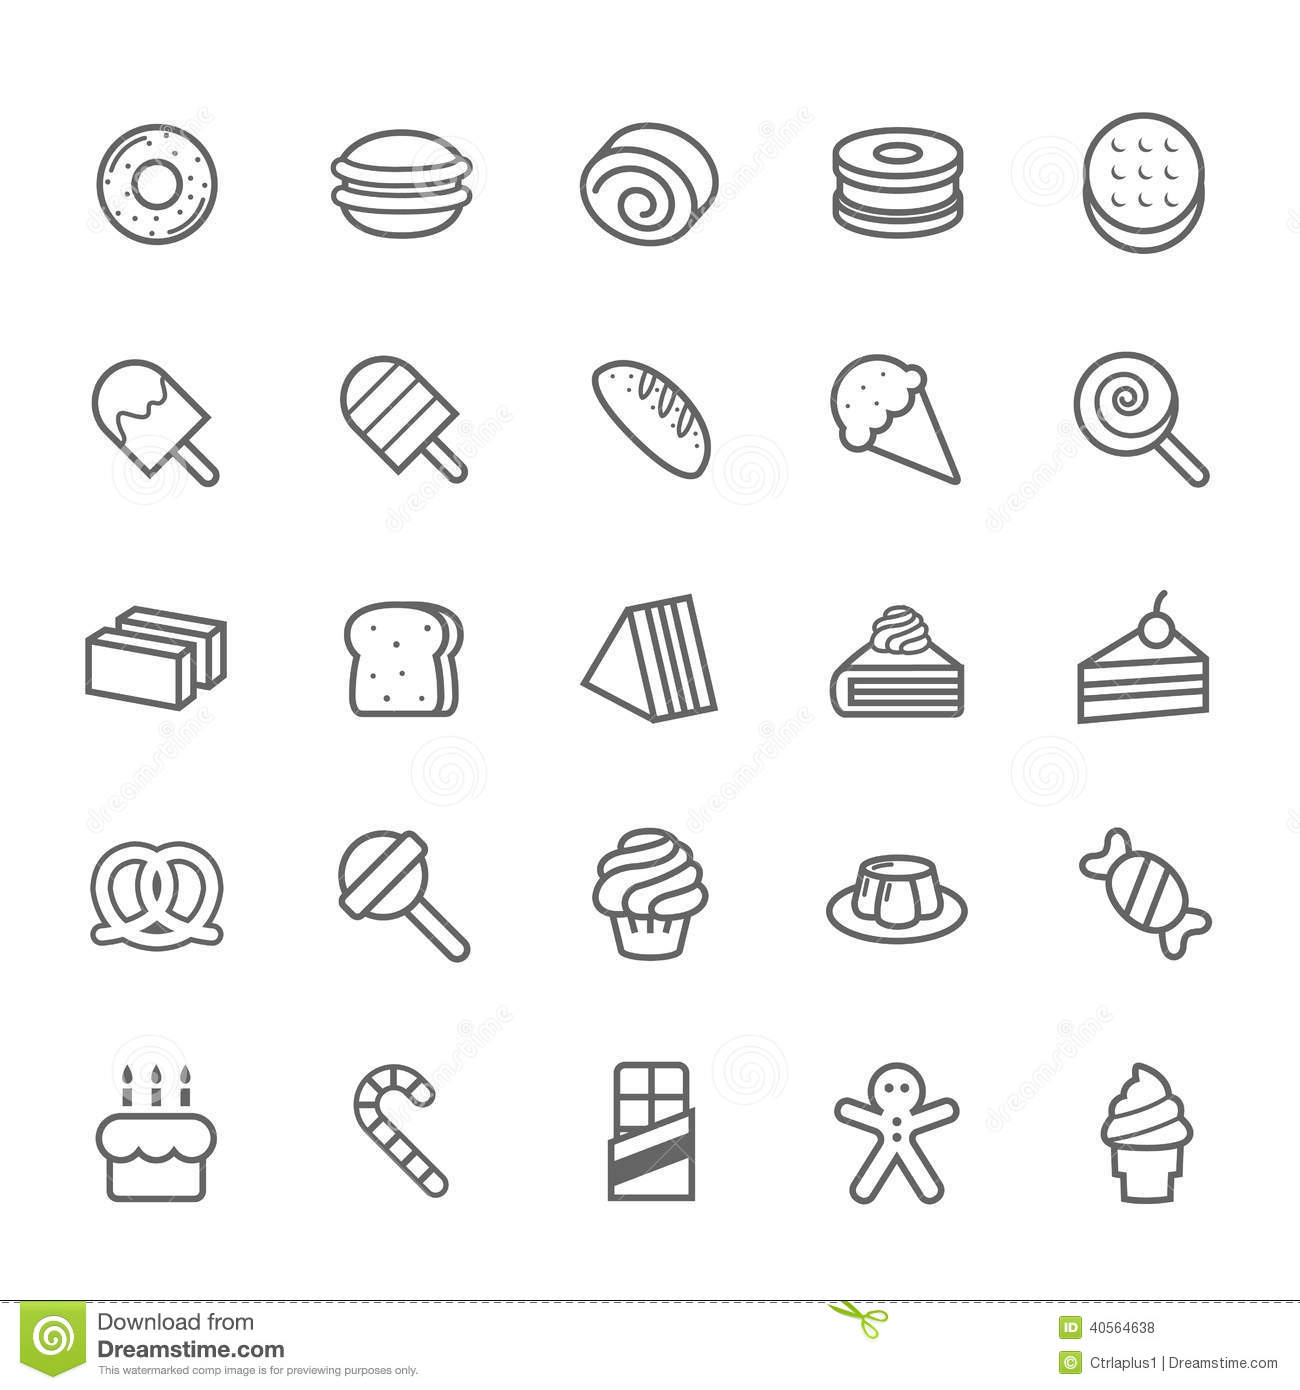 Sweet twins royalty free stock photo image 10320675 - Set Of Outline Stroke Dessert And Sweet Icon Royalty Free Stock Photos